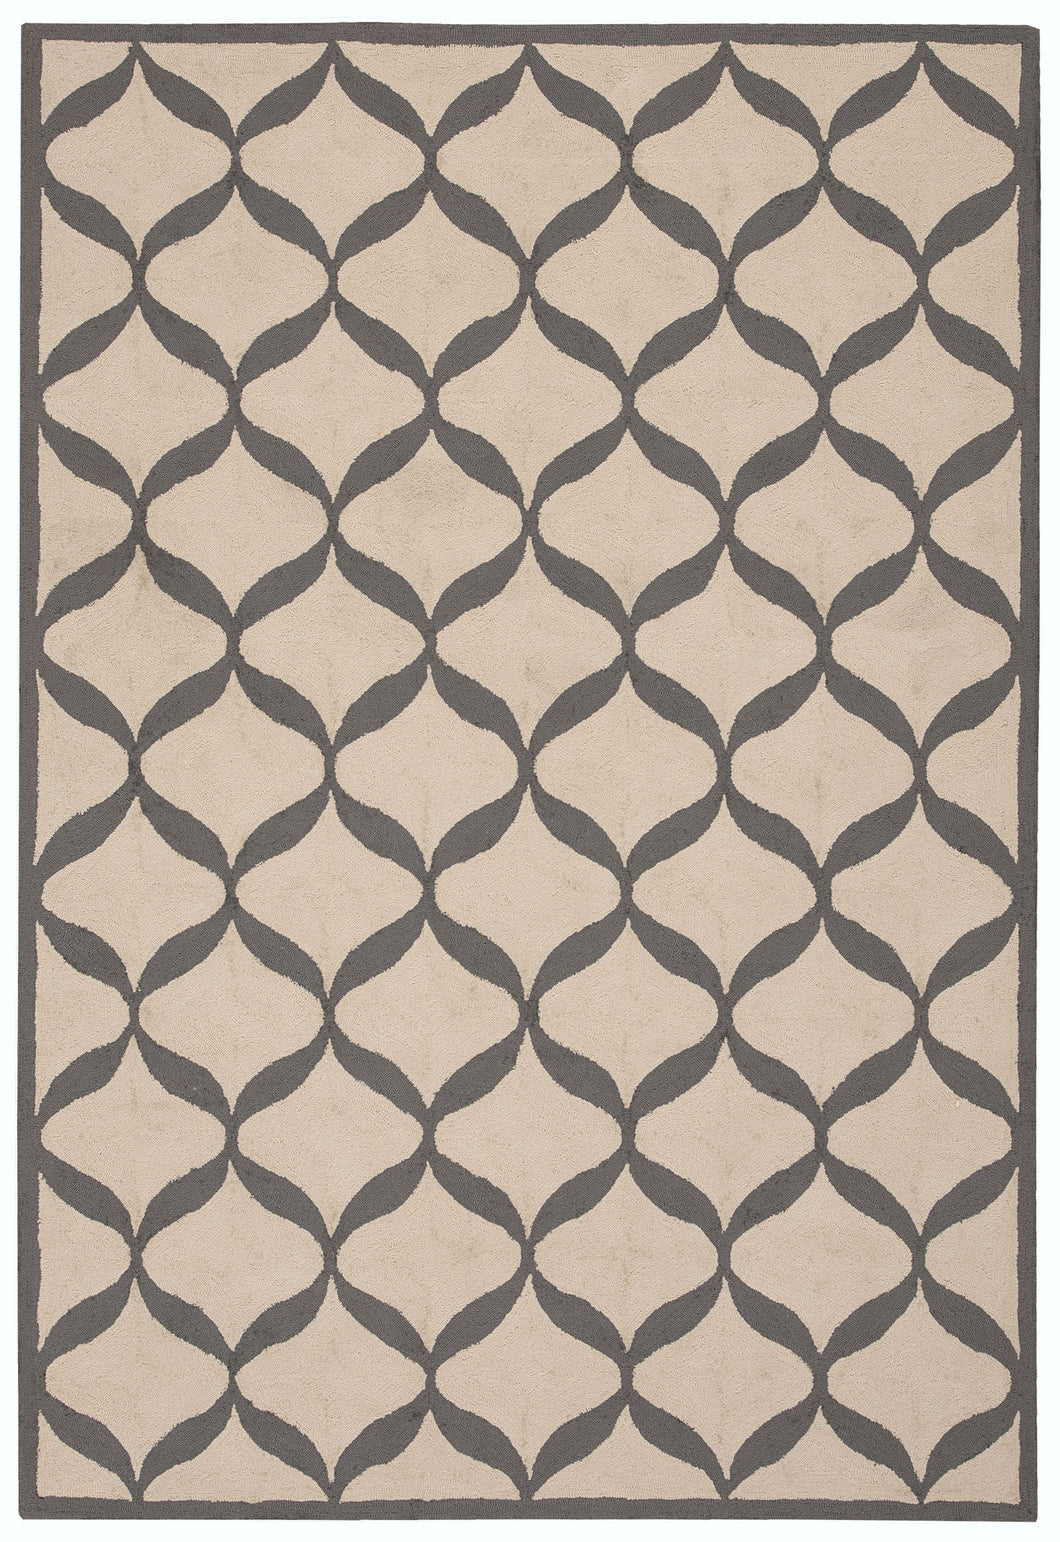 Nourison Decor White/Light Grey Area Rug DER06 WTLGY